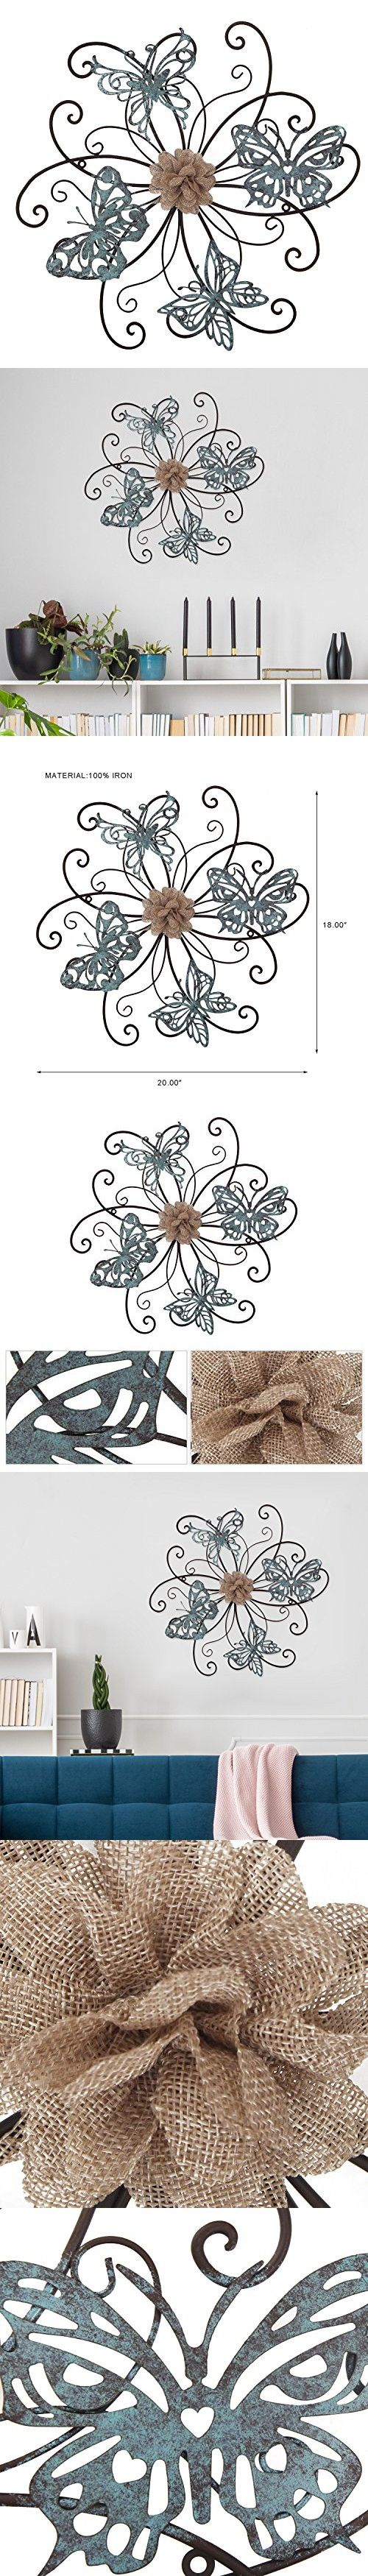 Home's Art Flower And Butterfly Urban Design Metal Wall Decor For With Newest Flower And Butterfly Urban Design Metal Wall Decor (Gallery 13 of 20)